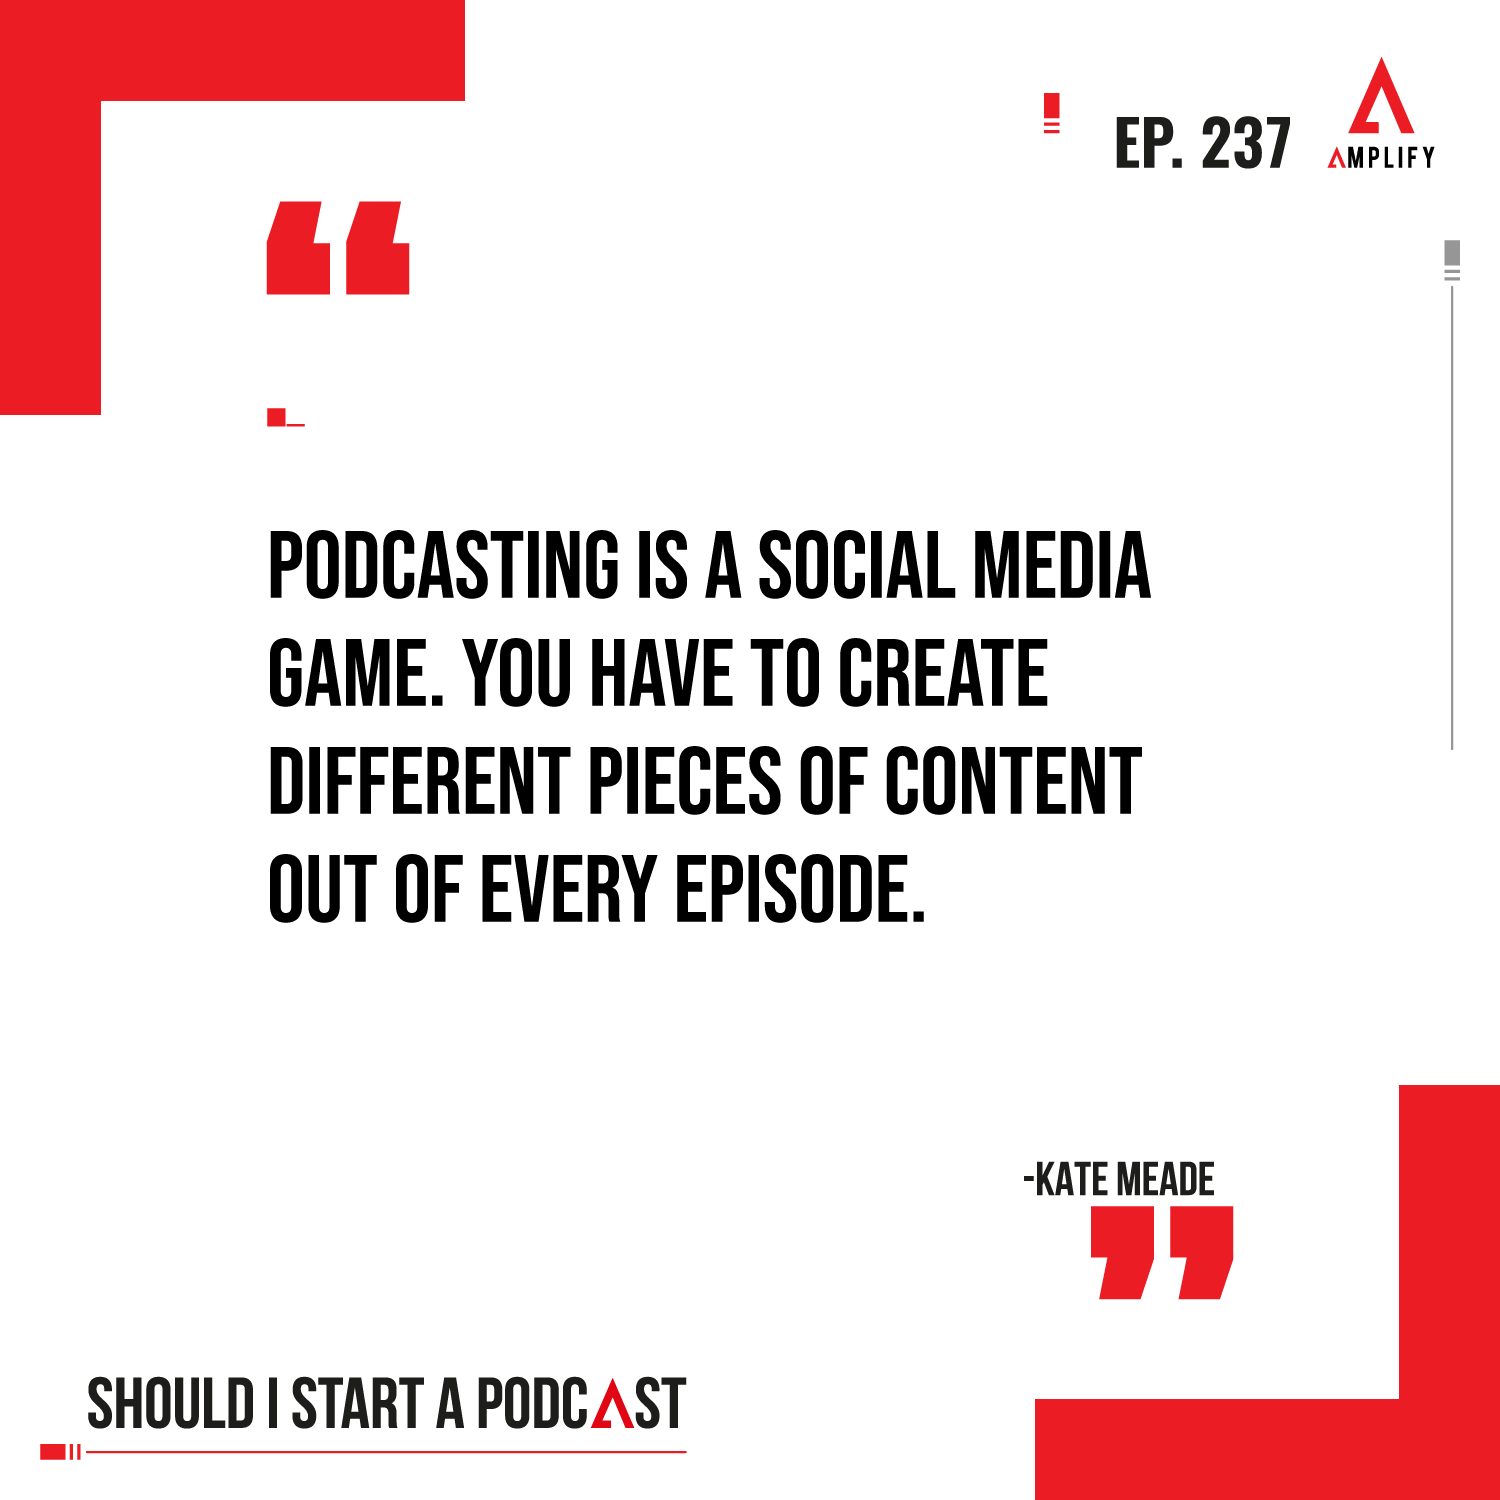 Quote: Podcasting is a social media game. You have to create different pieces of content out of every episode.